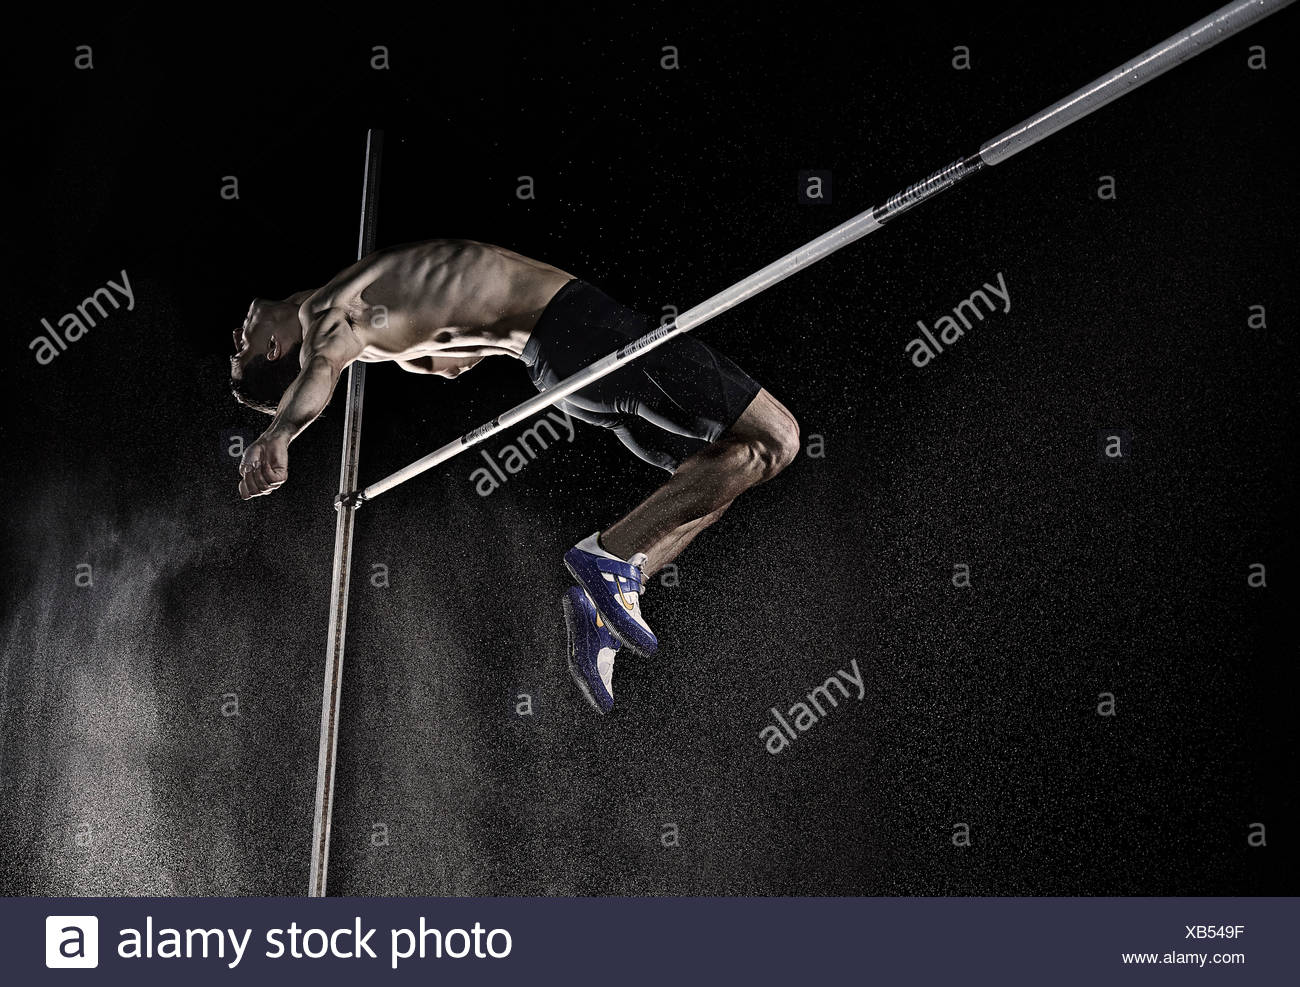 Athlete doing a high jump - Stock Image